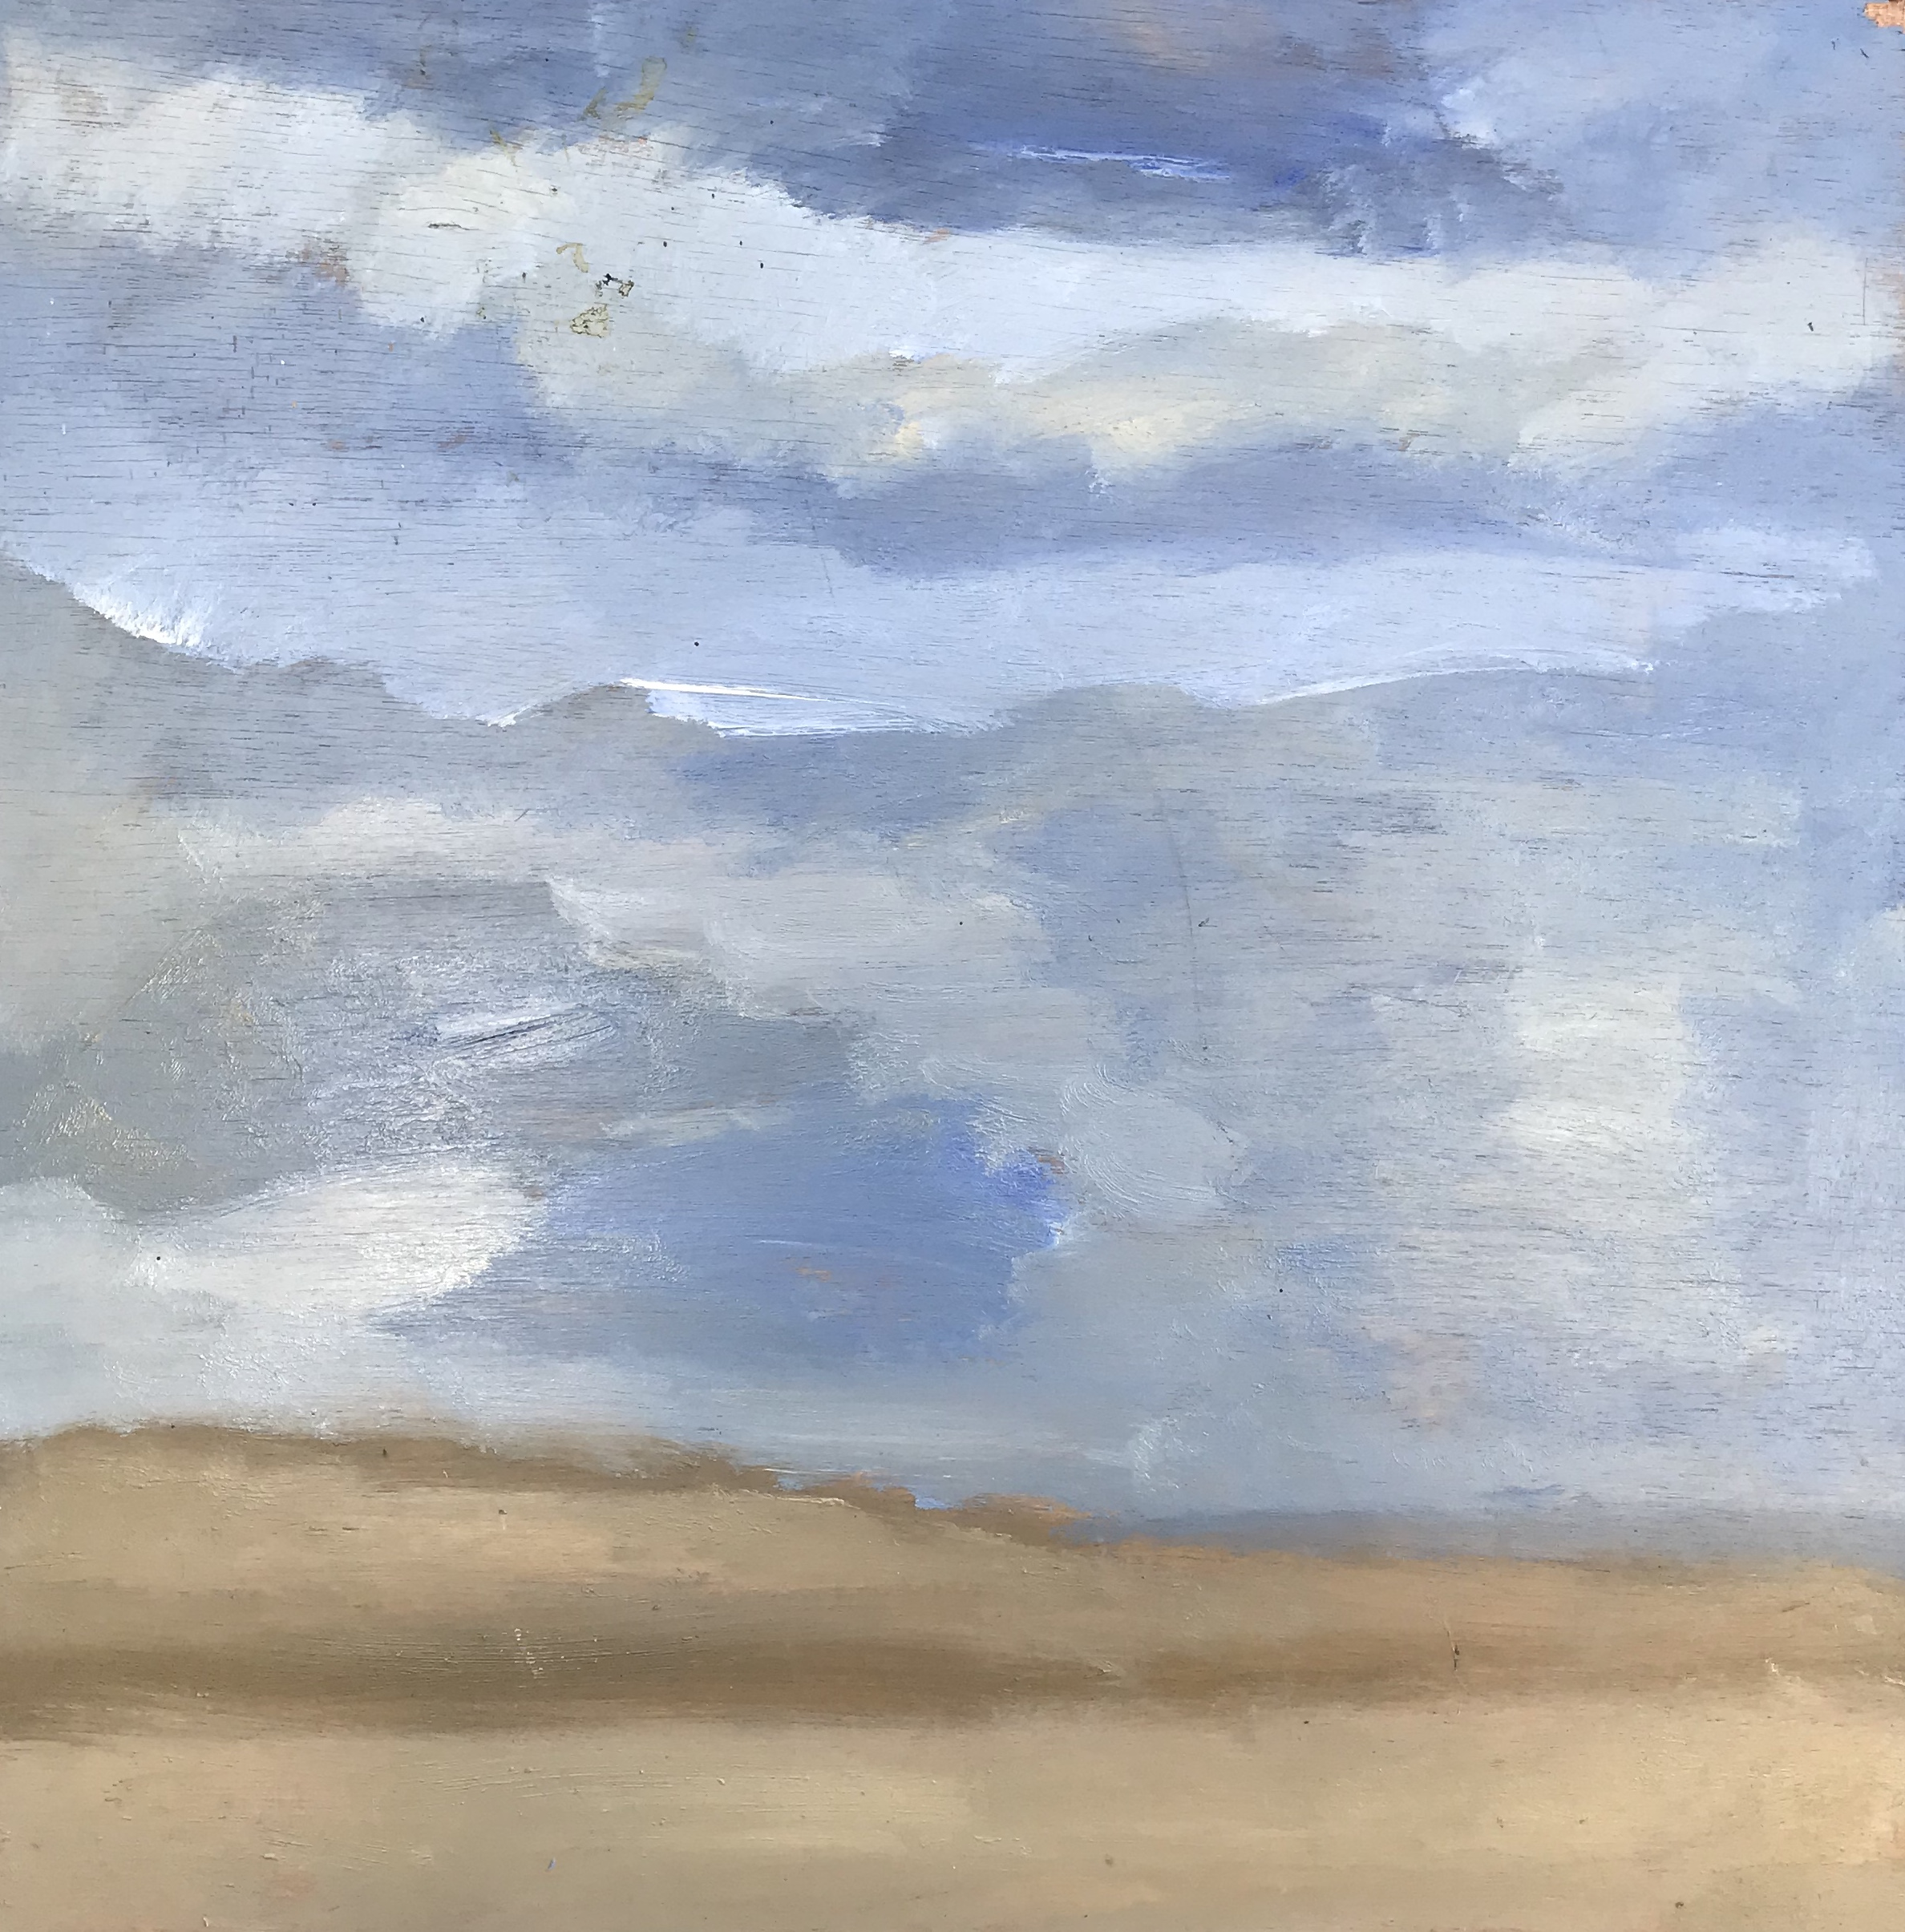 """""""Sea and Sand"""" - 24"""" x 24"""", oil on panel (needs to be framed)Value: $2,650Opening bid: $900email your bid to: art@bradfordbrenner.com"""